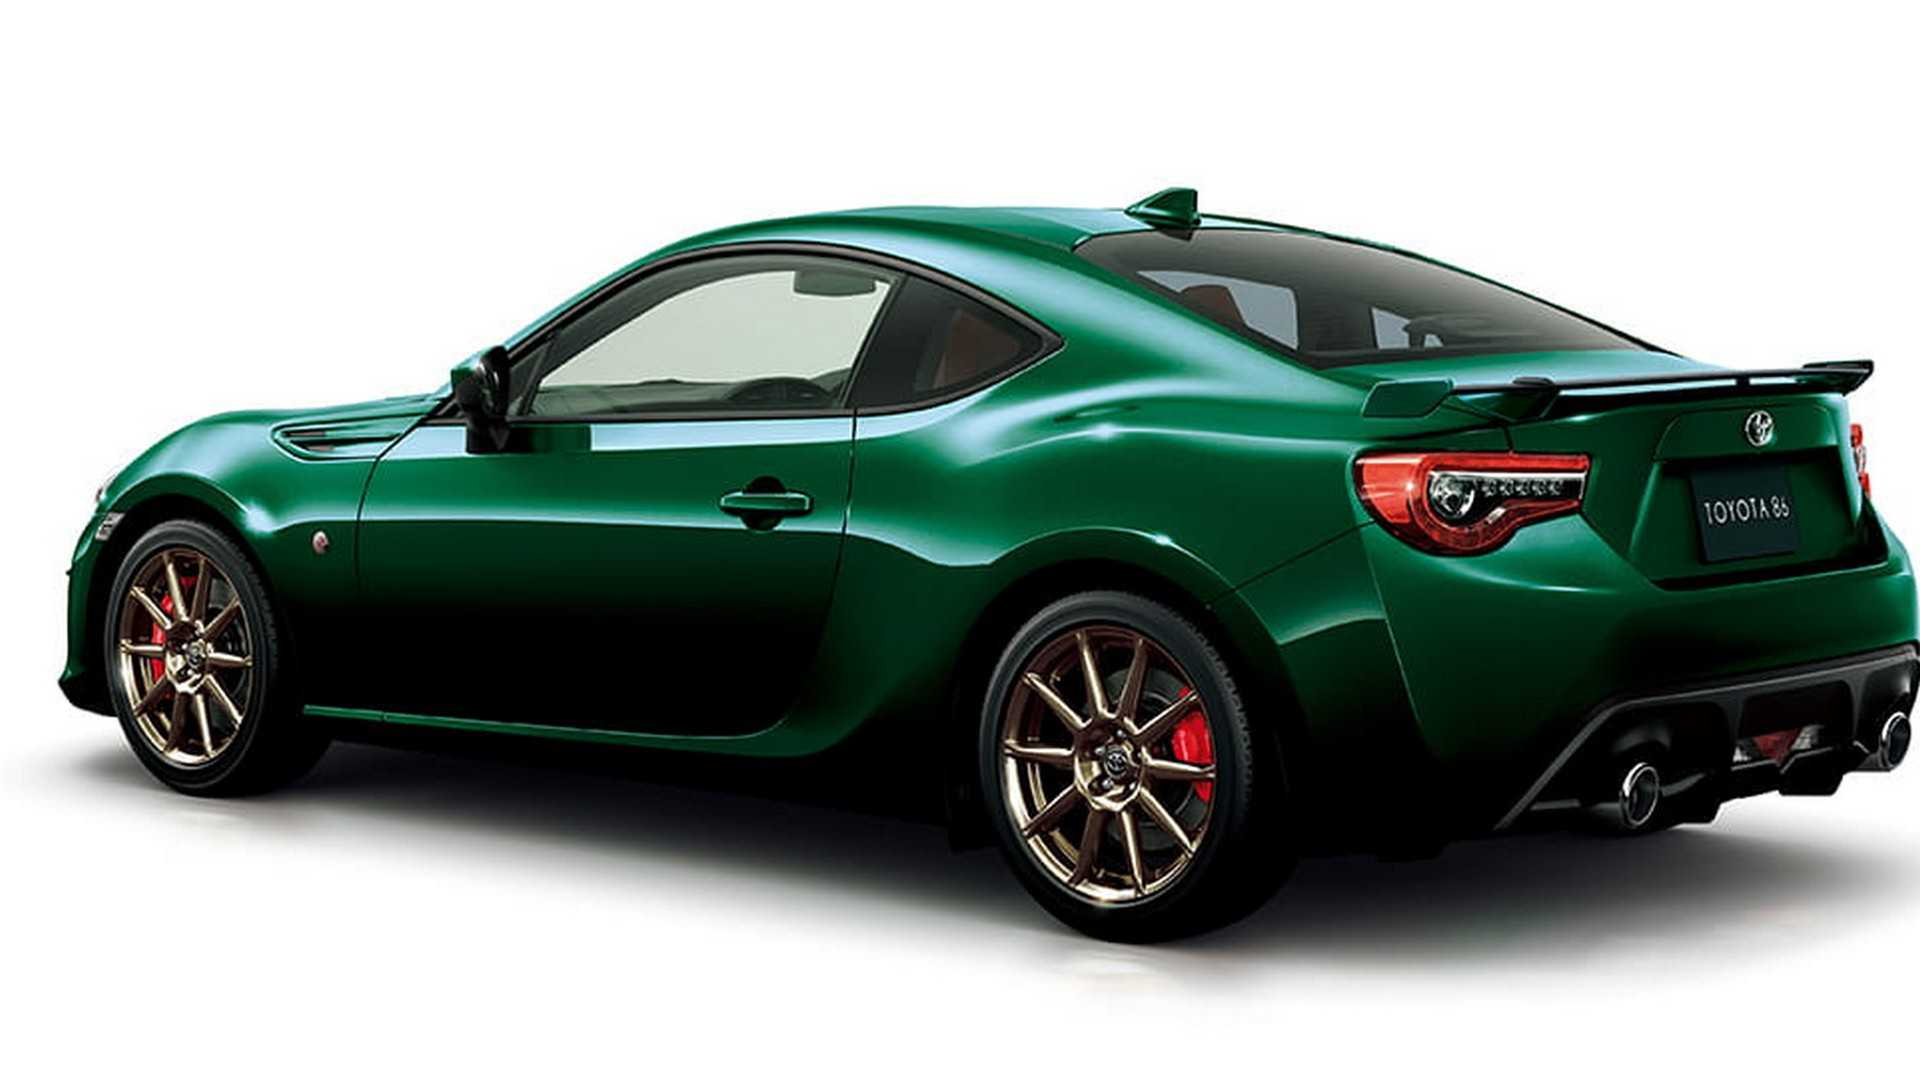 Toyota_GT86_British_Green_Limited_0000